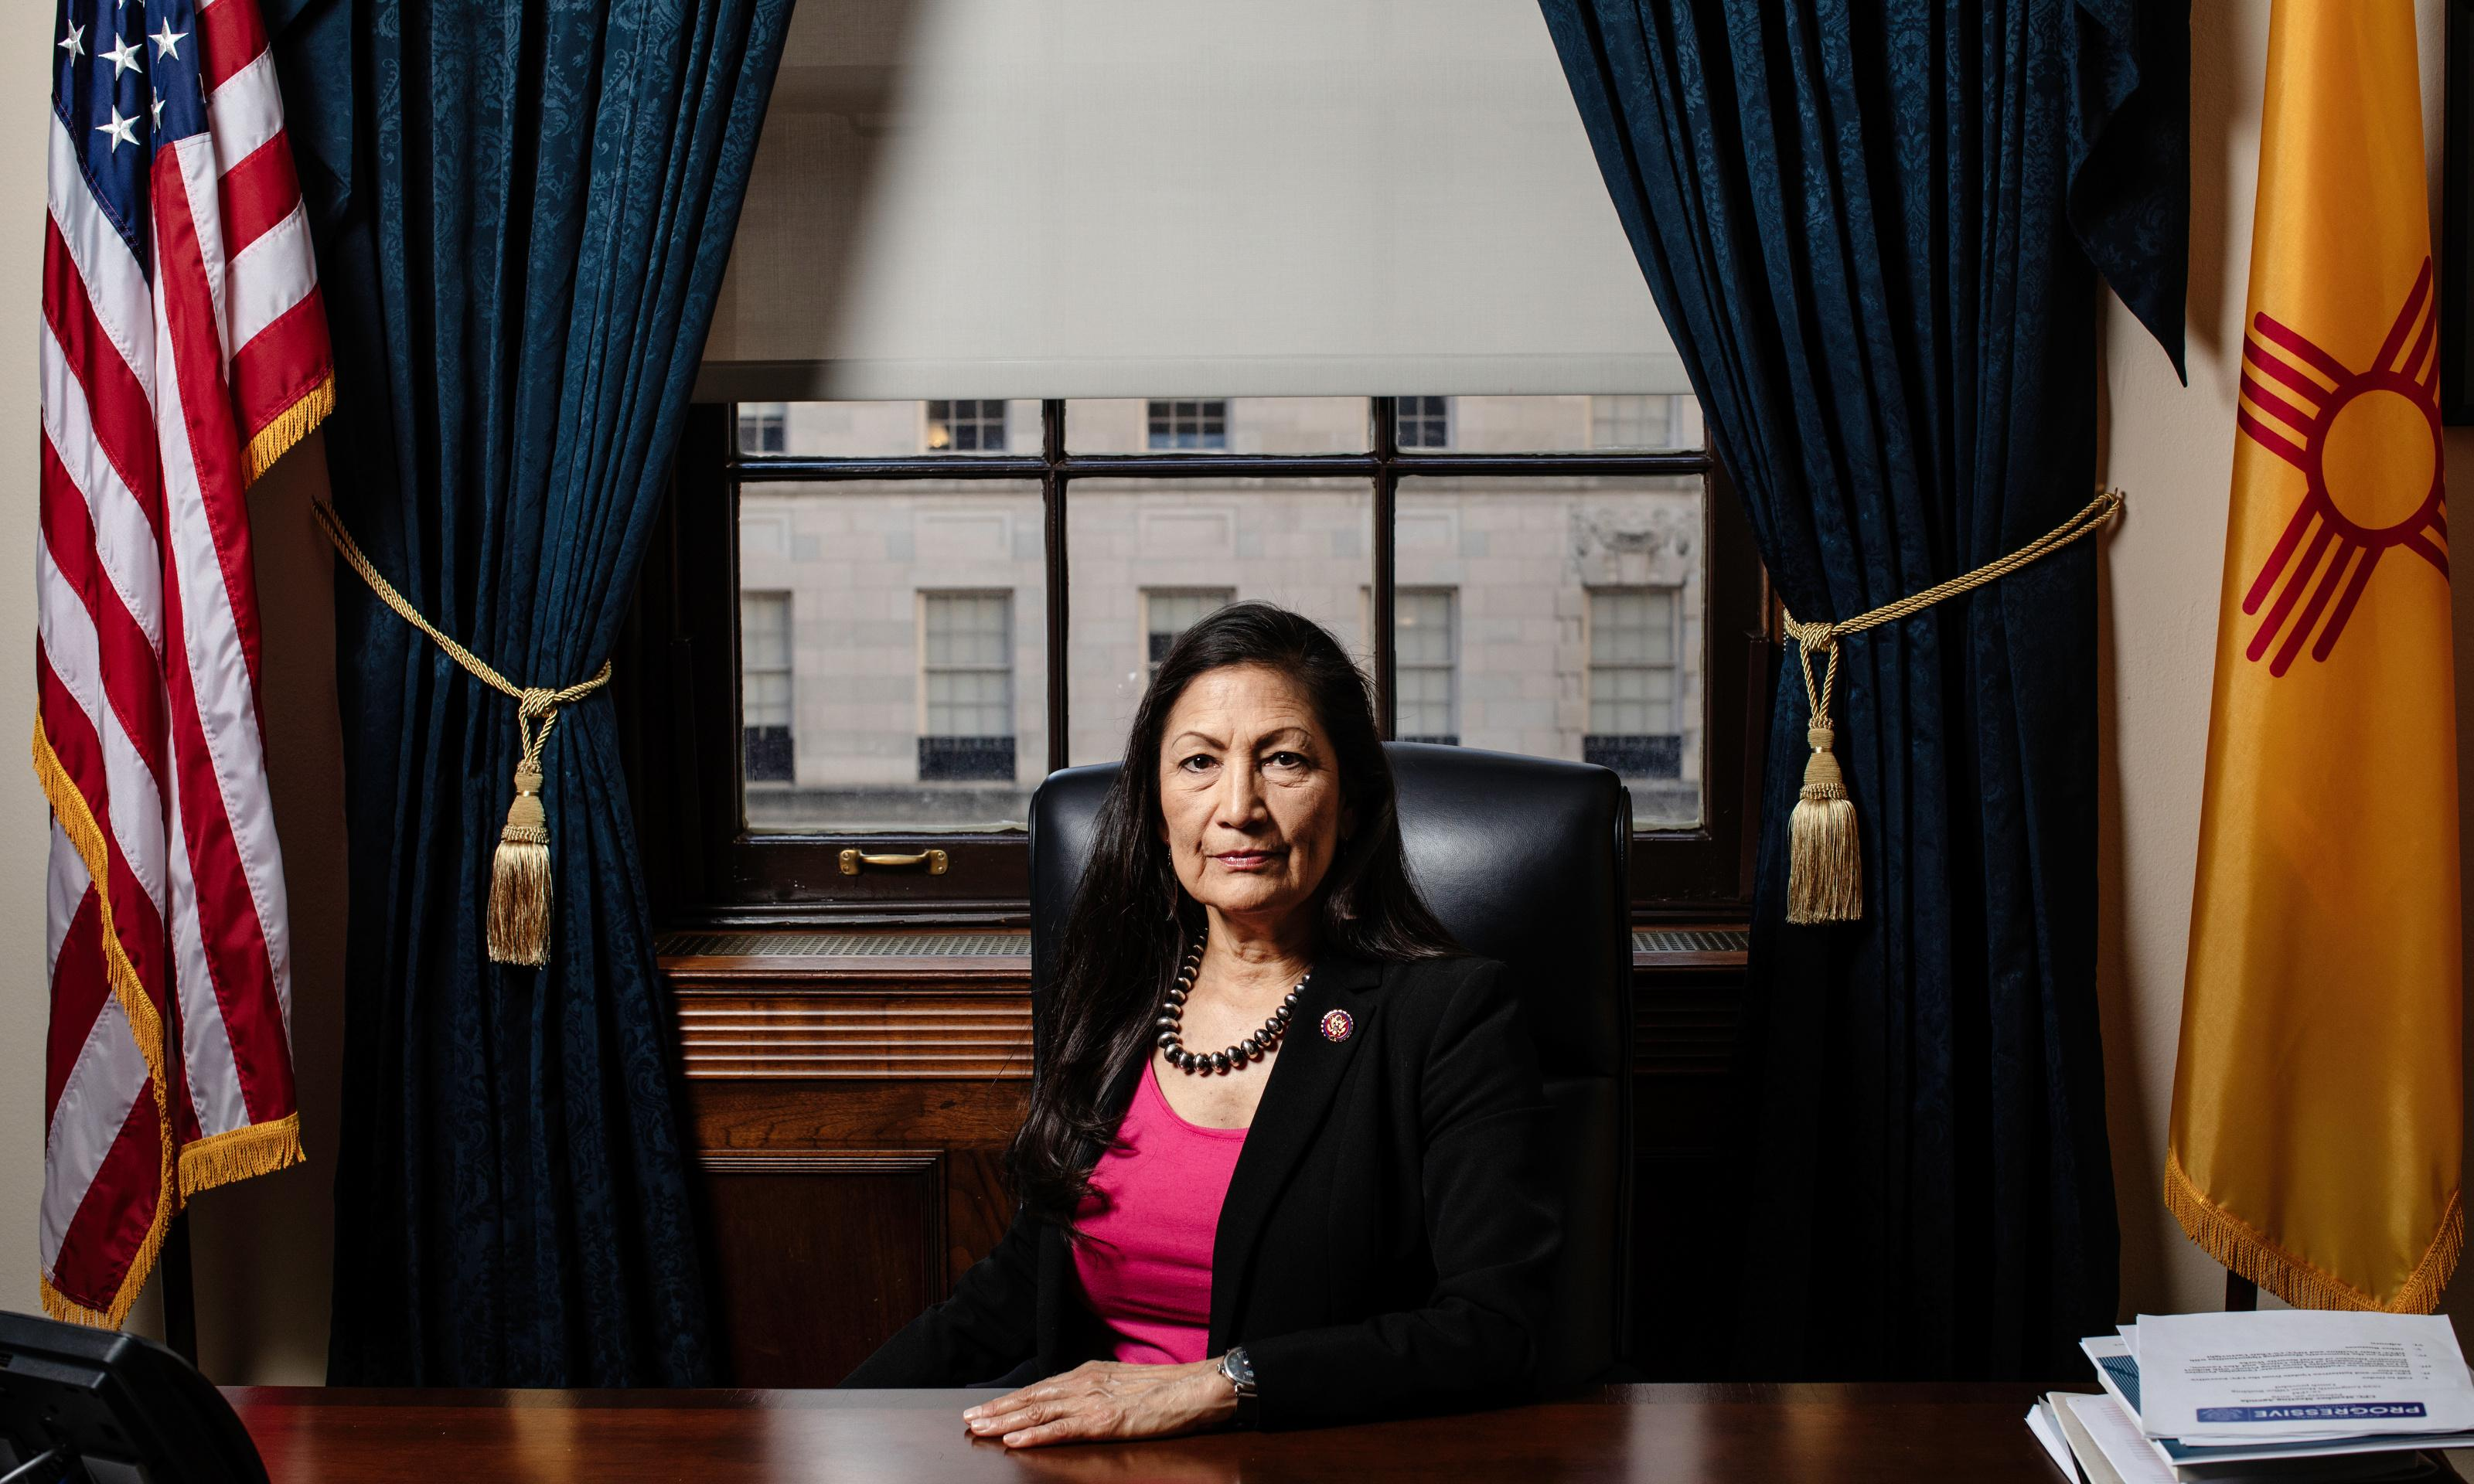 'It's my homeland': the trailblazing Native lawmaker fighting fossil fuels